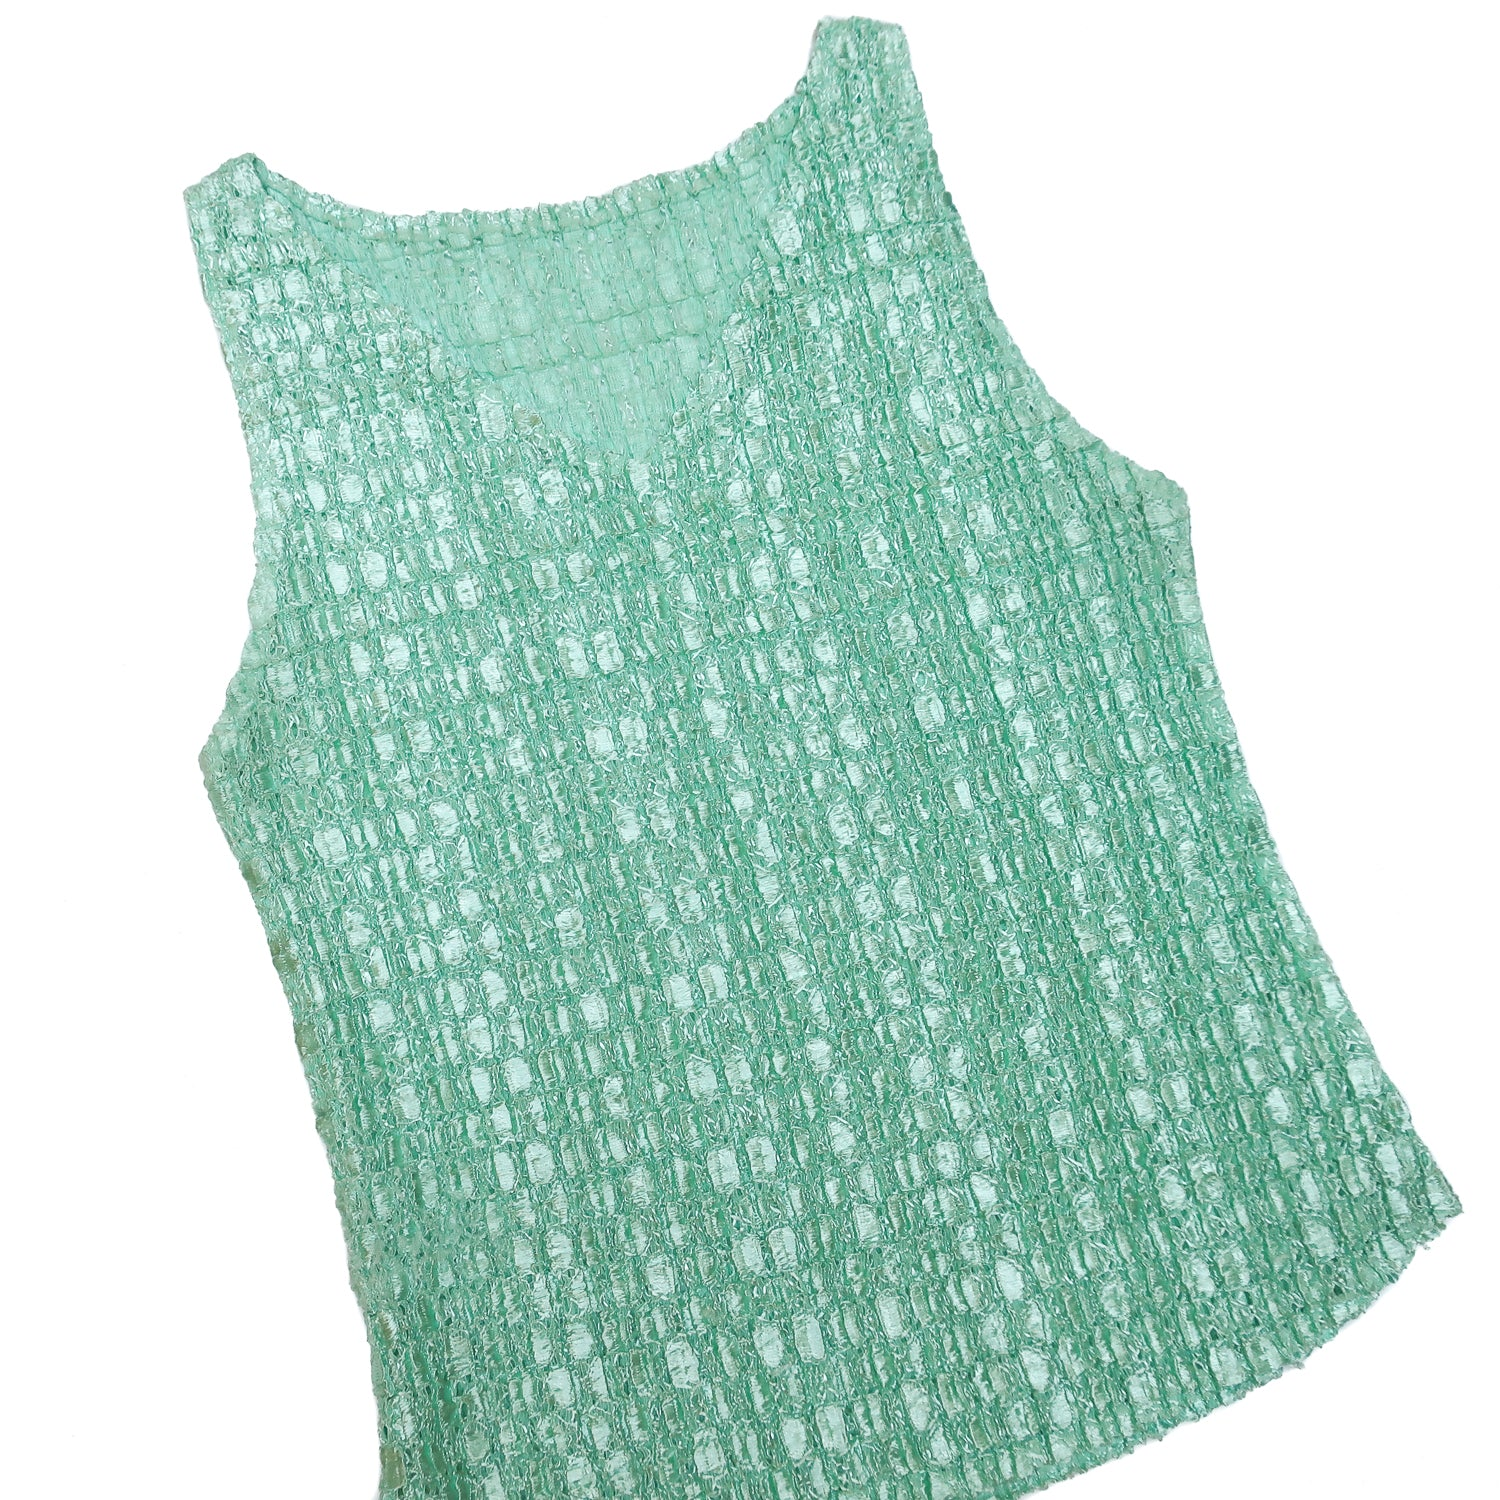 Second Room Vintage Clothing. Vintage 90s mint green scrunchie top. Sleeveless, v-neck, and very stretchy. Free Shipping on all orders within North America.